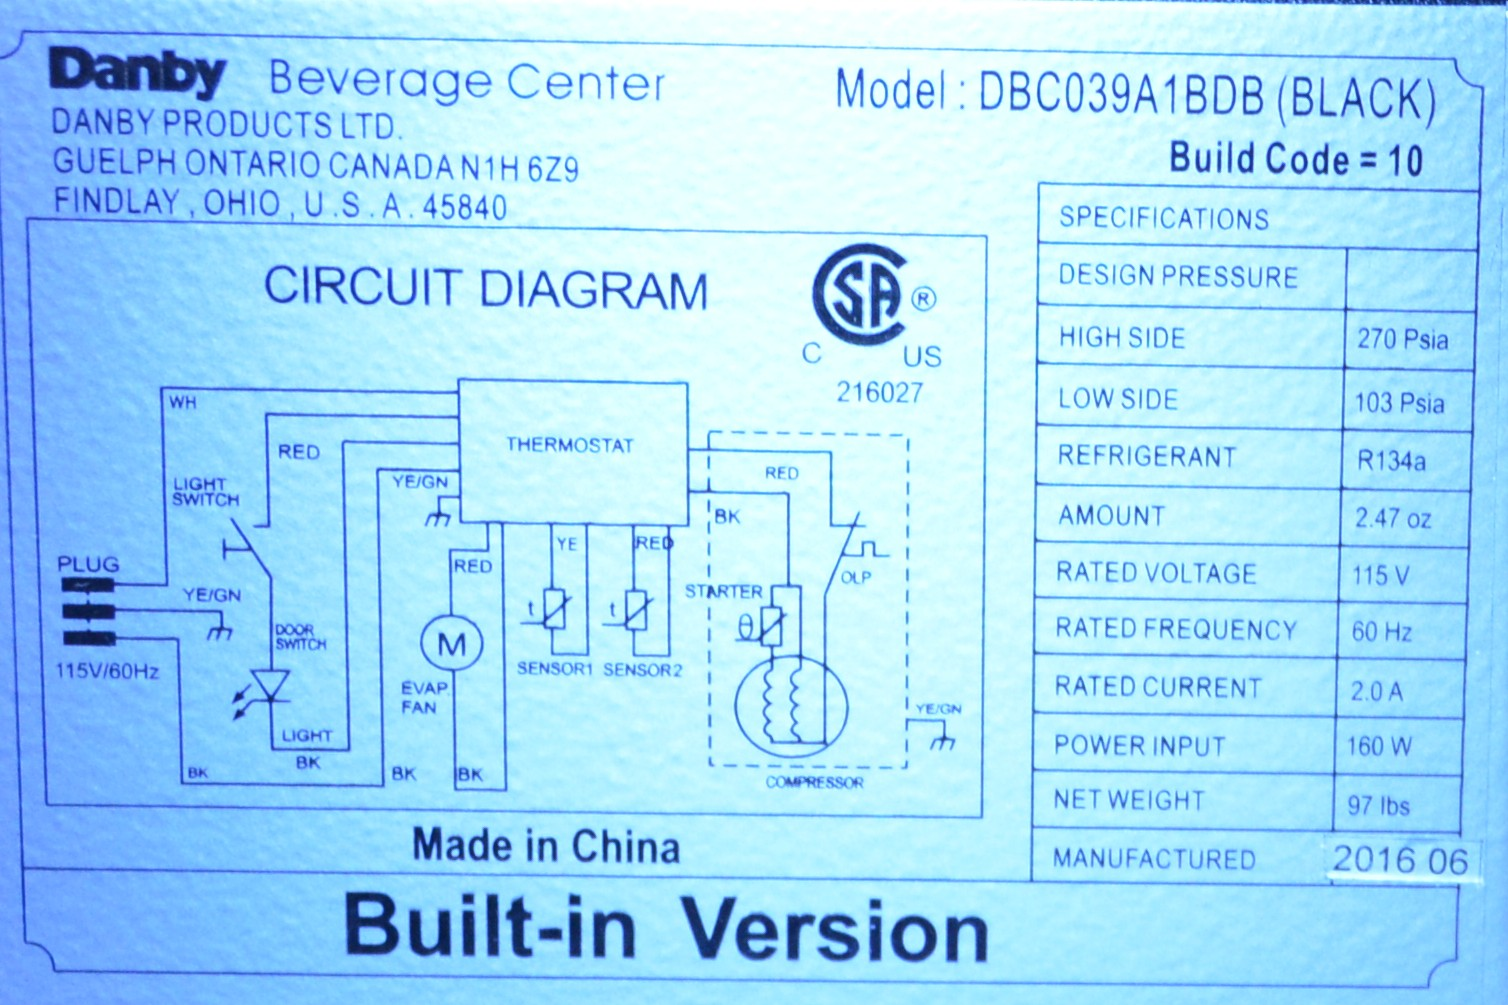 Danby wiring diagram new wiring diagram 2018 use of ups for beverage center homebrewtalk com beer wine flotec wiring diagram danby wine cooler wiring diagram stereo wiring diagram on danby wiring cheapraybanclubmaster Images